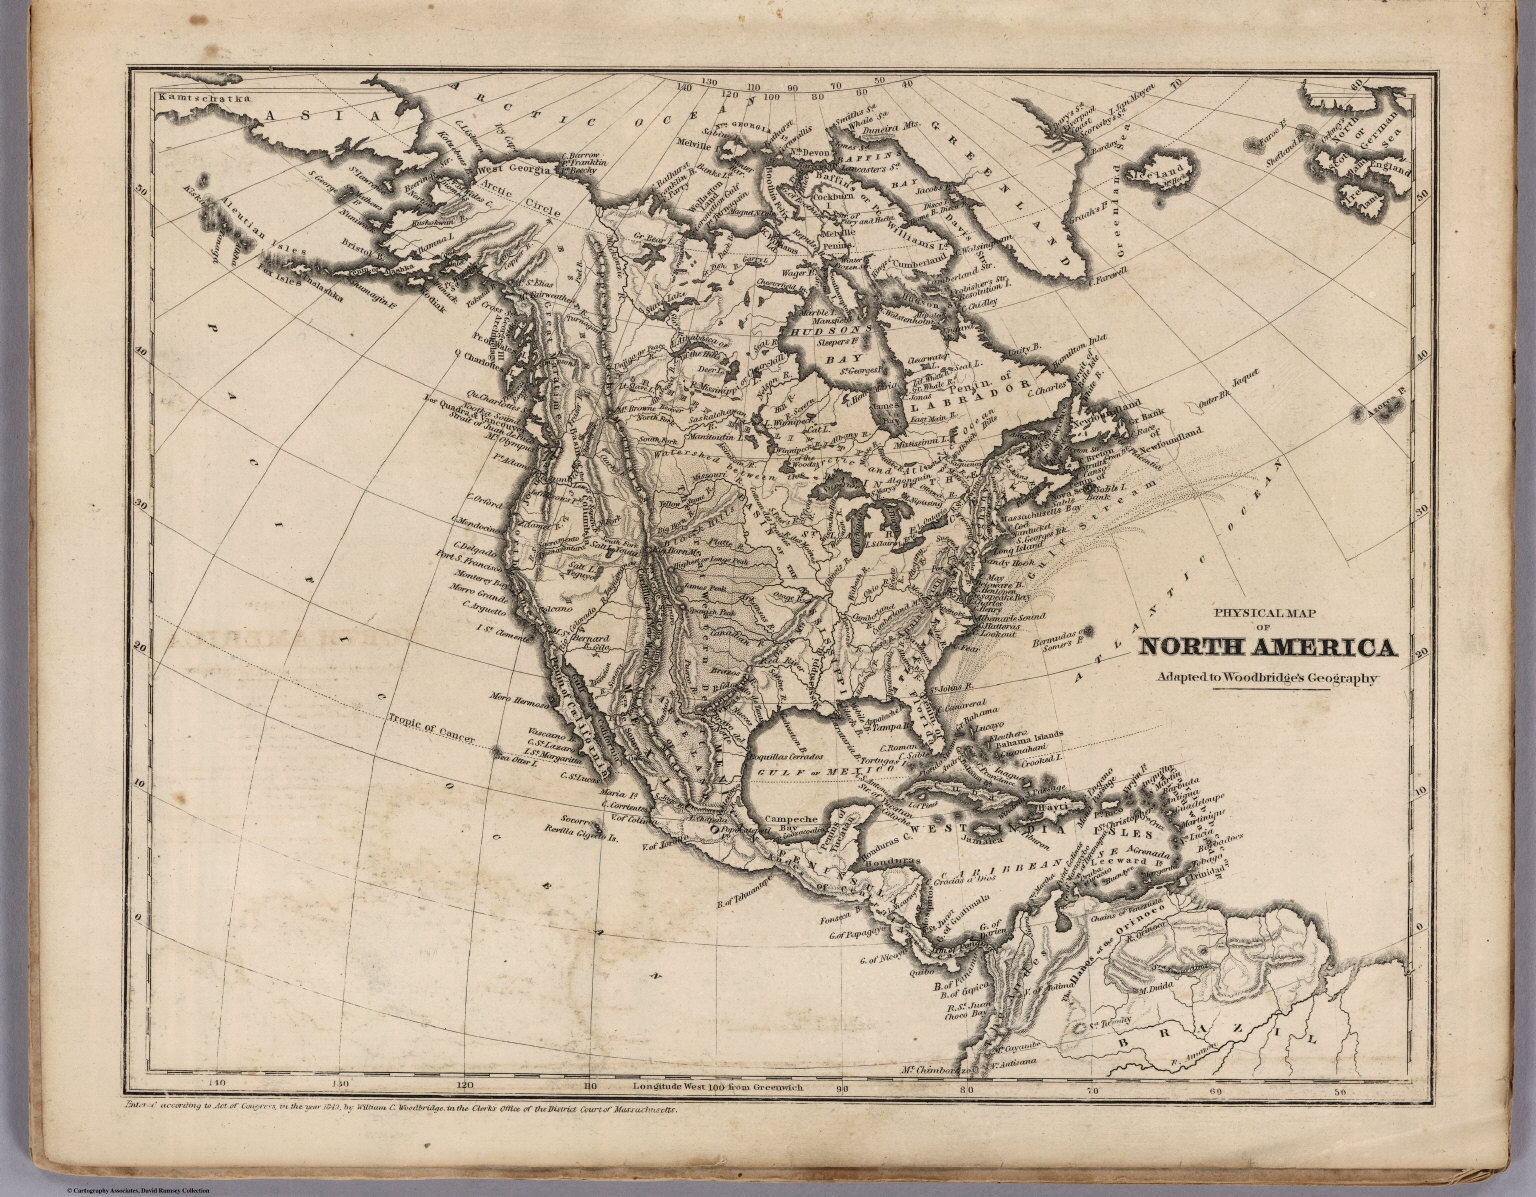 Physical Map Of North America David Rumsey Historical Map Collection - North america historical map 1845